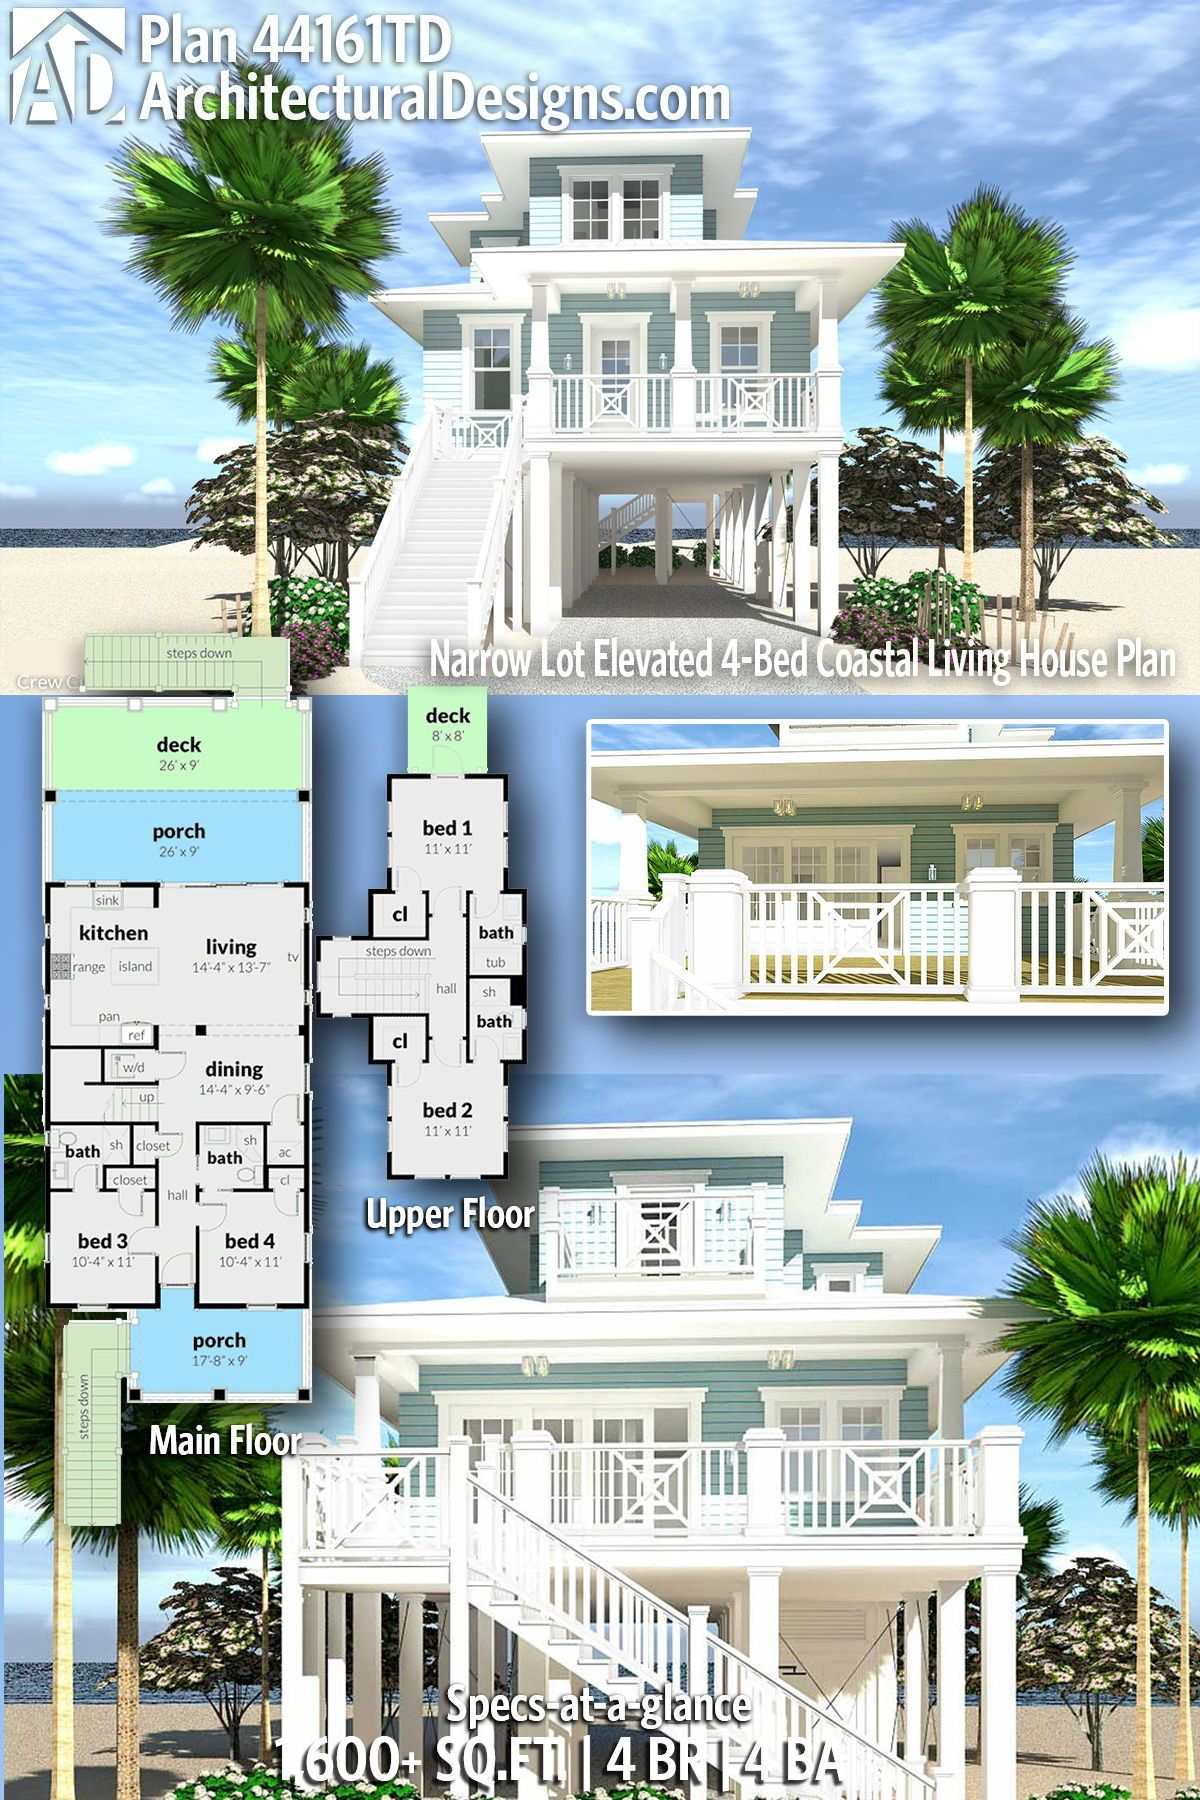 Plan 44161TD: Narrow Lot Elevated 4-Bed Coastal Living House ... on narrow lot architecture, old narrow lot house plans, narrow lot floor plans, cute and small house plans, single story narrow lot house plans, award-winning small cottage house plans, narrow lot house plans with garage, florida house on stilts plans, narrow houses floor plans, narrow lot lake house plans, narrow lot log house plans, narrow lot european house plans, unique narrow lot house plans, craftsman narrow lot house plans, home style craftsman house plans, narrow lot two story house plans, narrow lot traditional house plans, narrow lot florida house plans, narrow lot waterfront house plans,